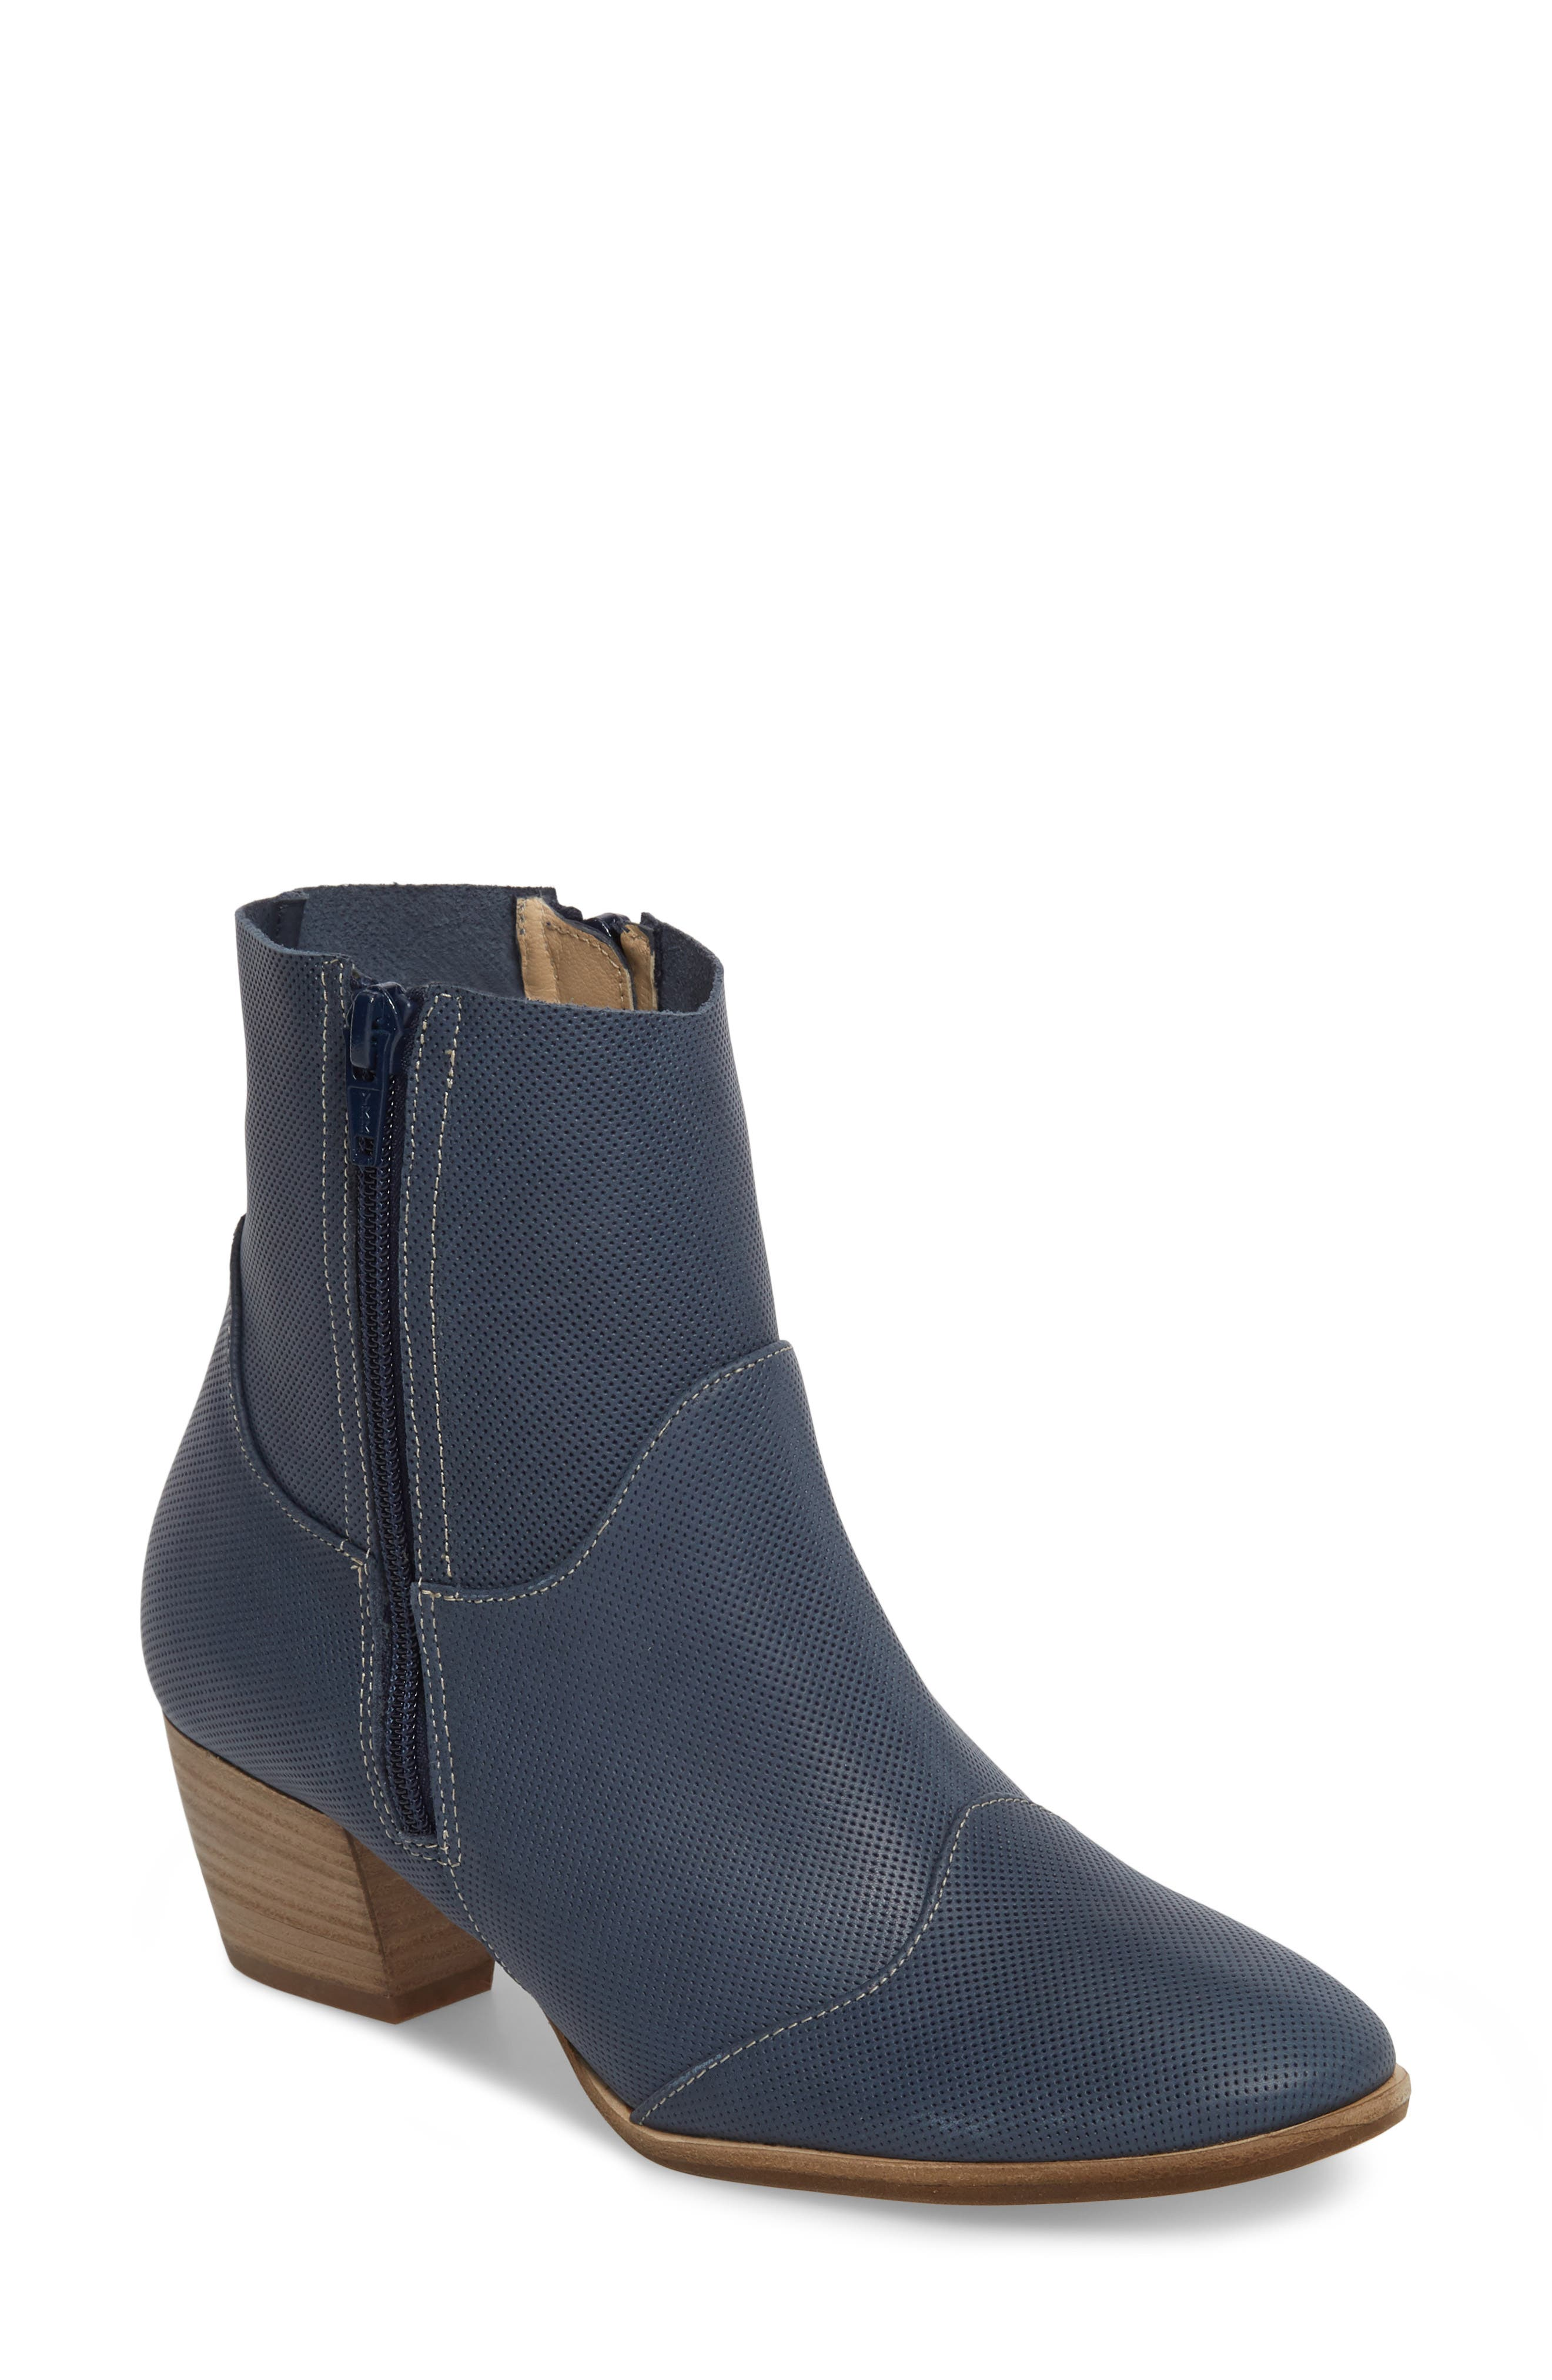 Robin Bootie,                         Main,                         color, Blue Leather